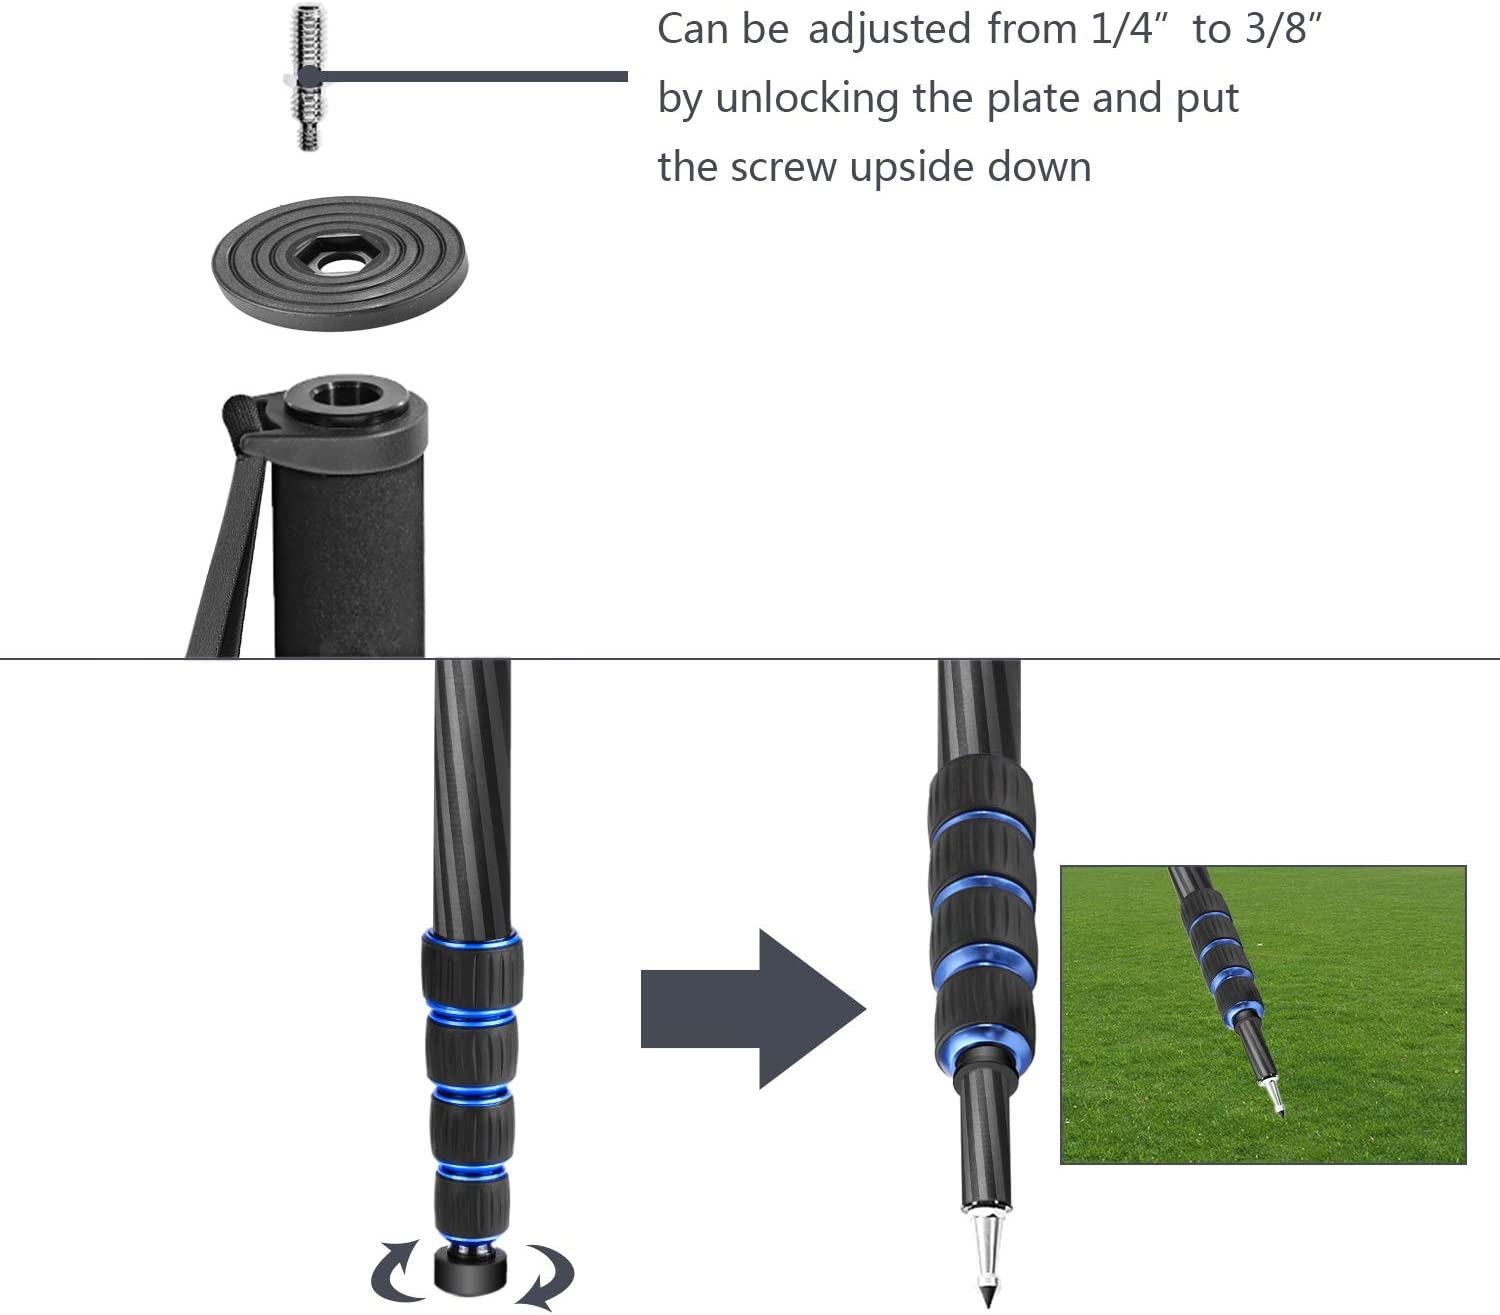 Payload up to 11 pounds//5 kilograms Neewer Extendable Camera Carbon Fiber Monopod with Removable Foldable Tripod Support Base: 5-Section Leg Max 66 inches for Canon Nikon Sony DSLR Cameras